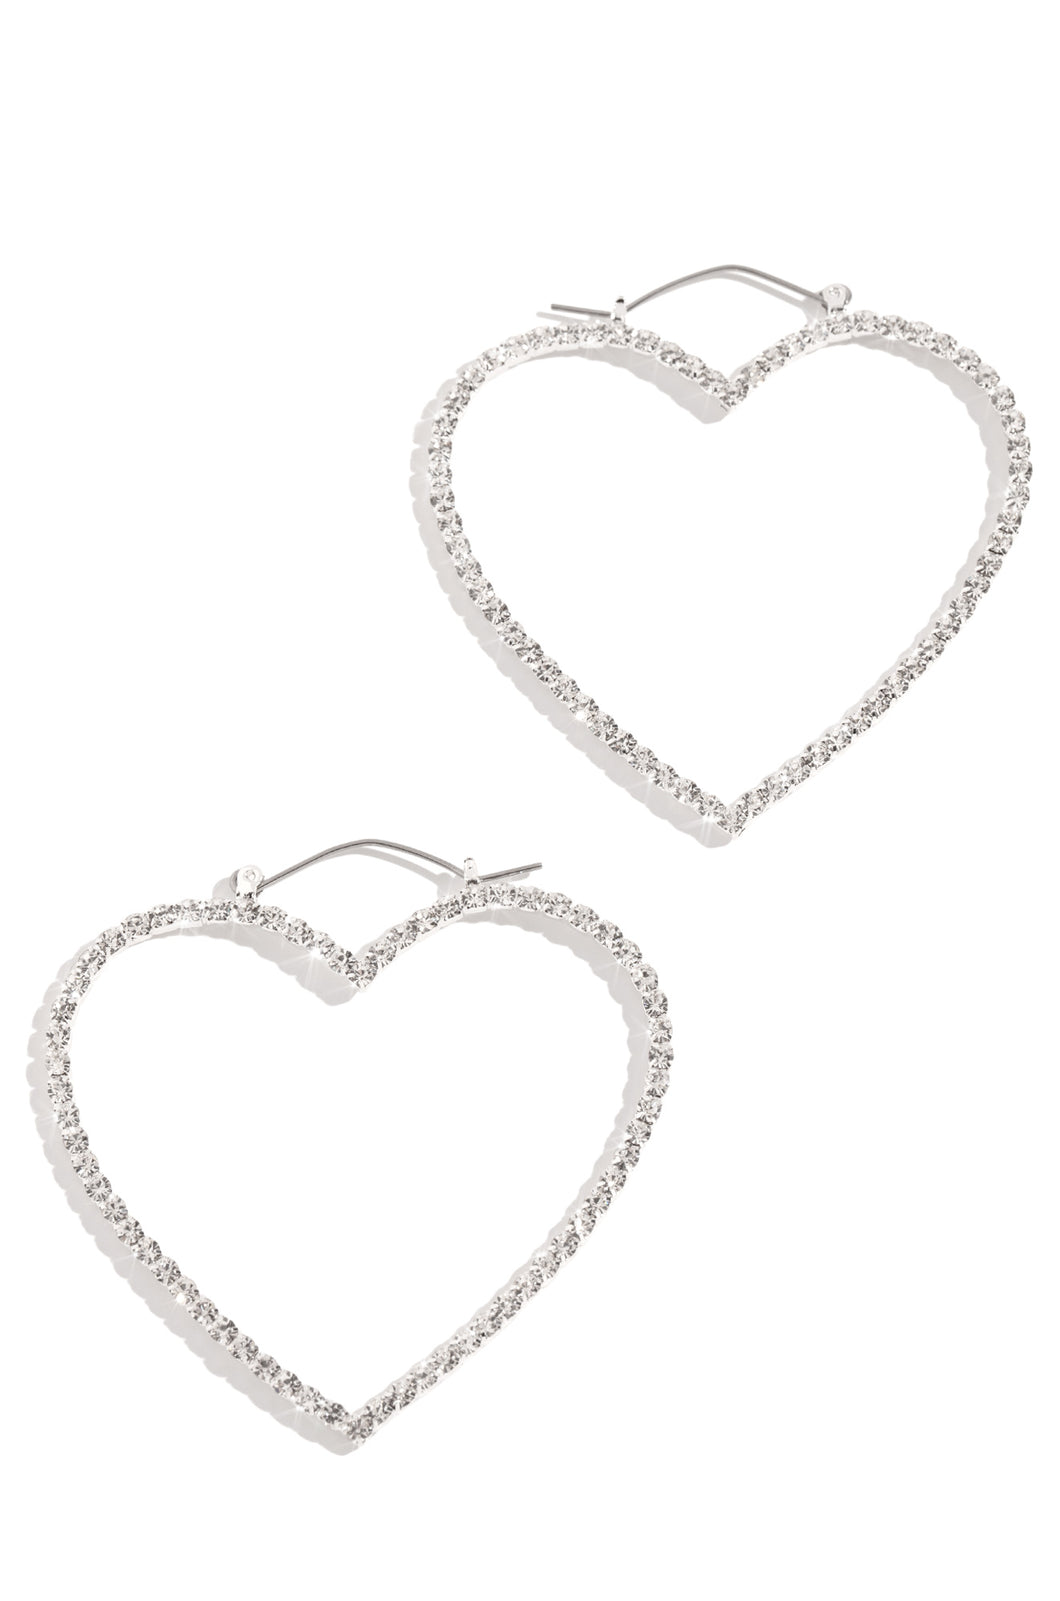 Everlasting Love Earring - Silver